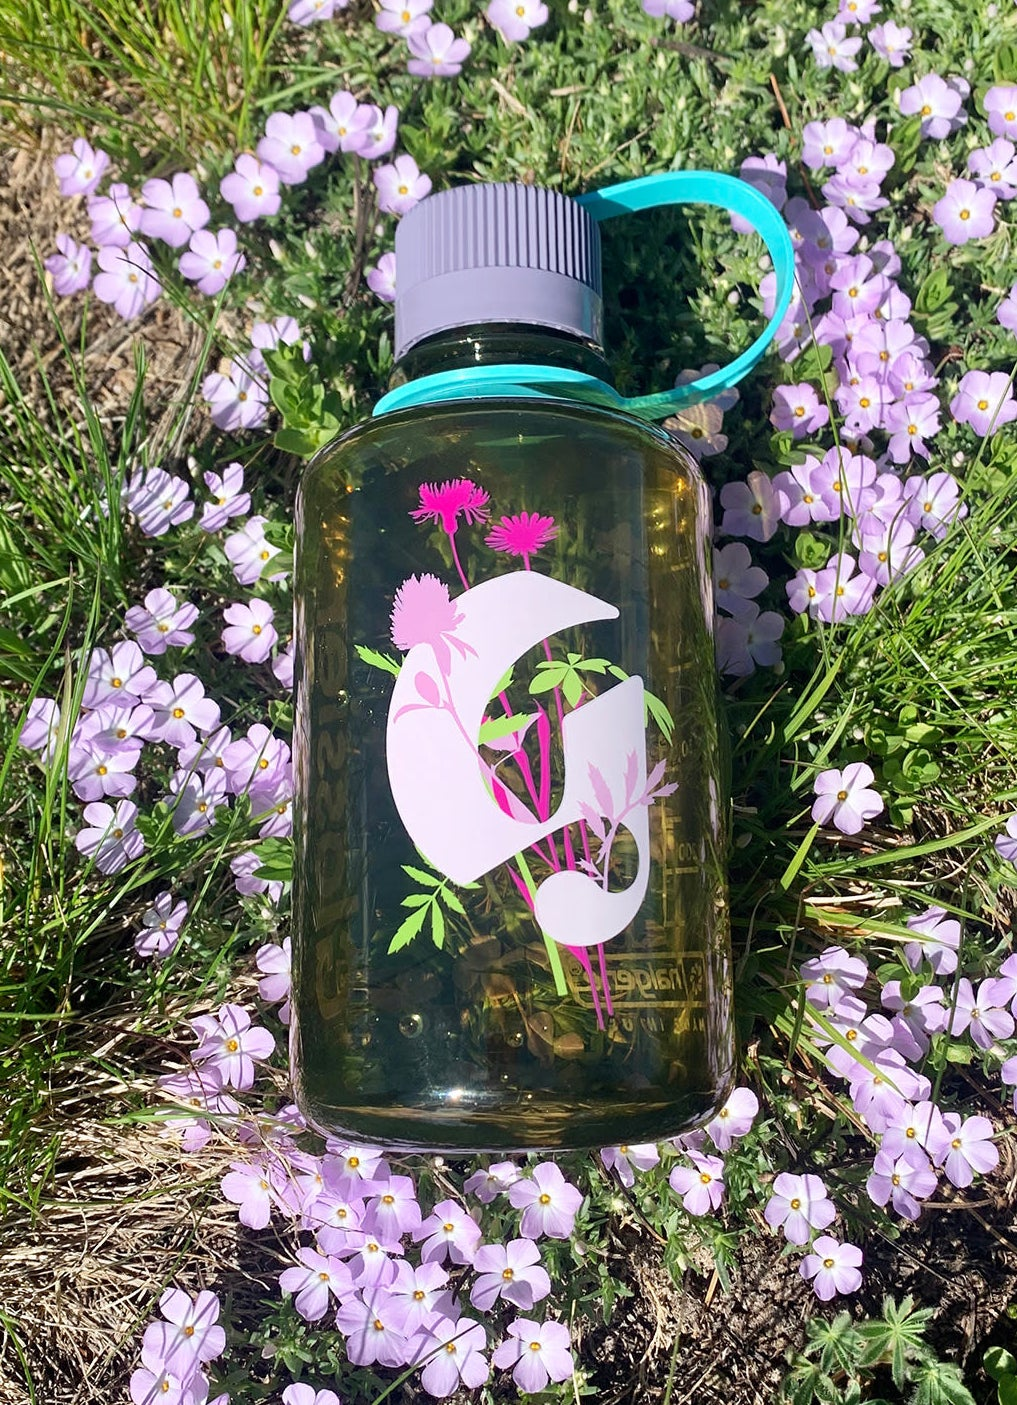 The semi-clear green water bottle with a floral Glossier g logo in pink with flowers on it on the front and grey lid with teal strap